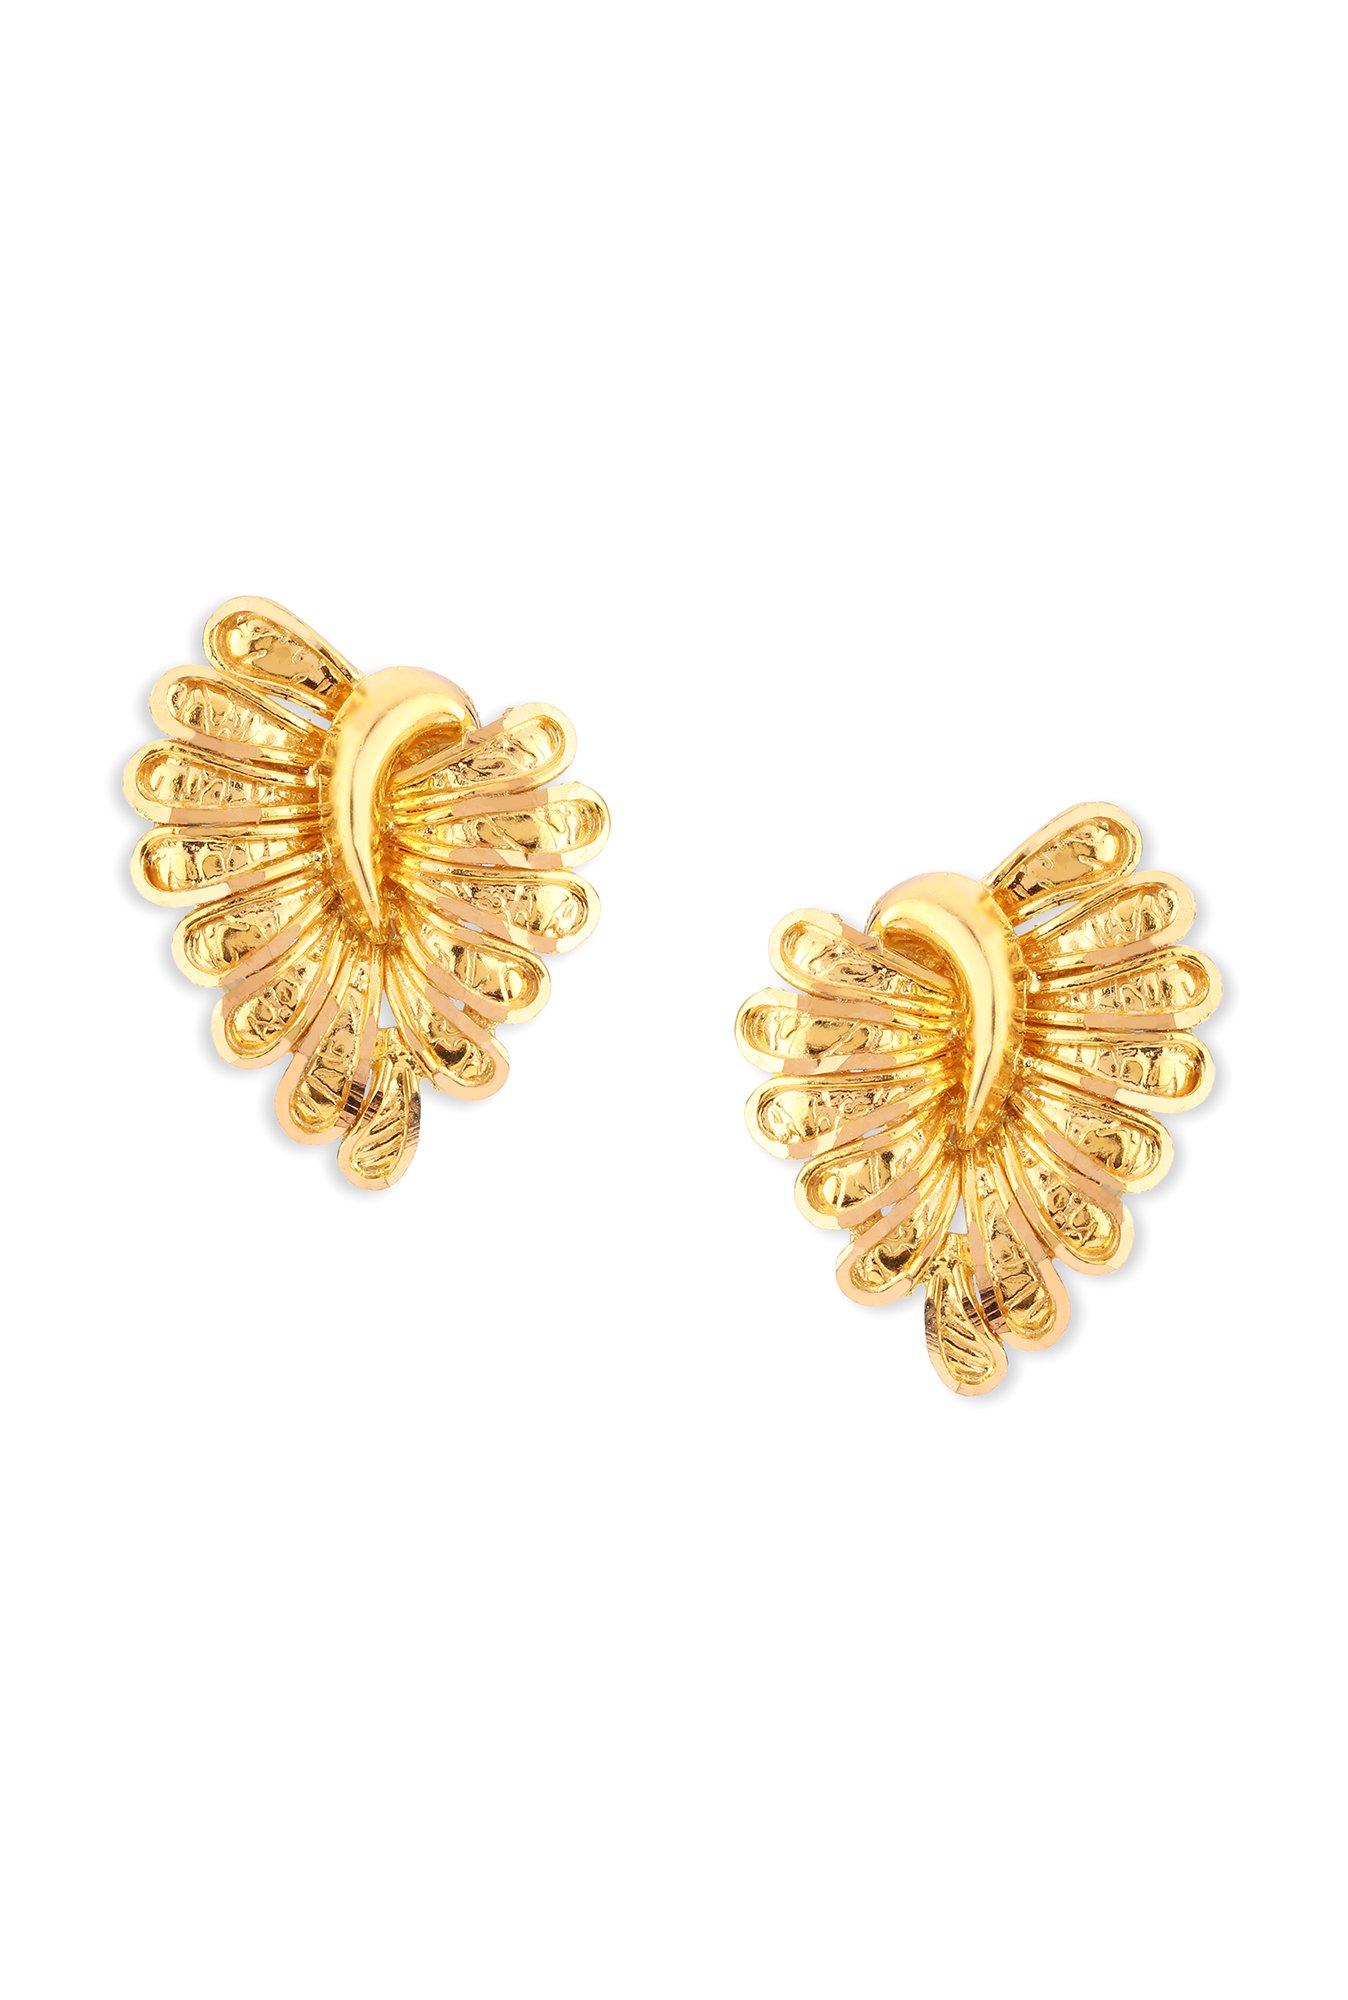 whp gold floral larger buy jewellers online l jhumki layered earrings view earring senco